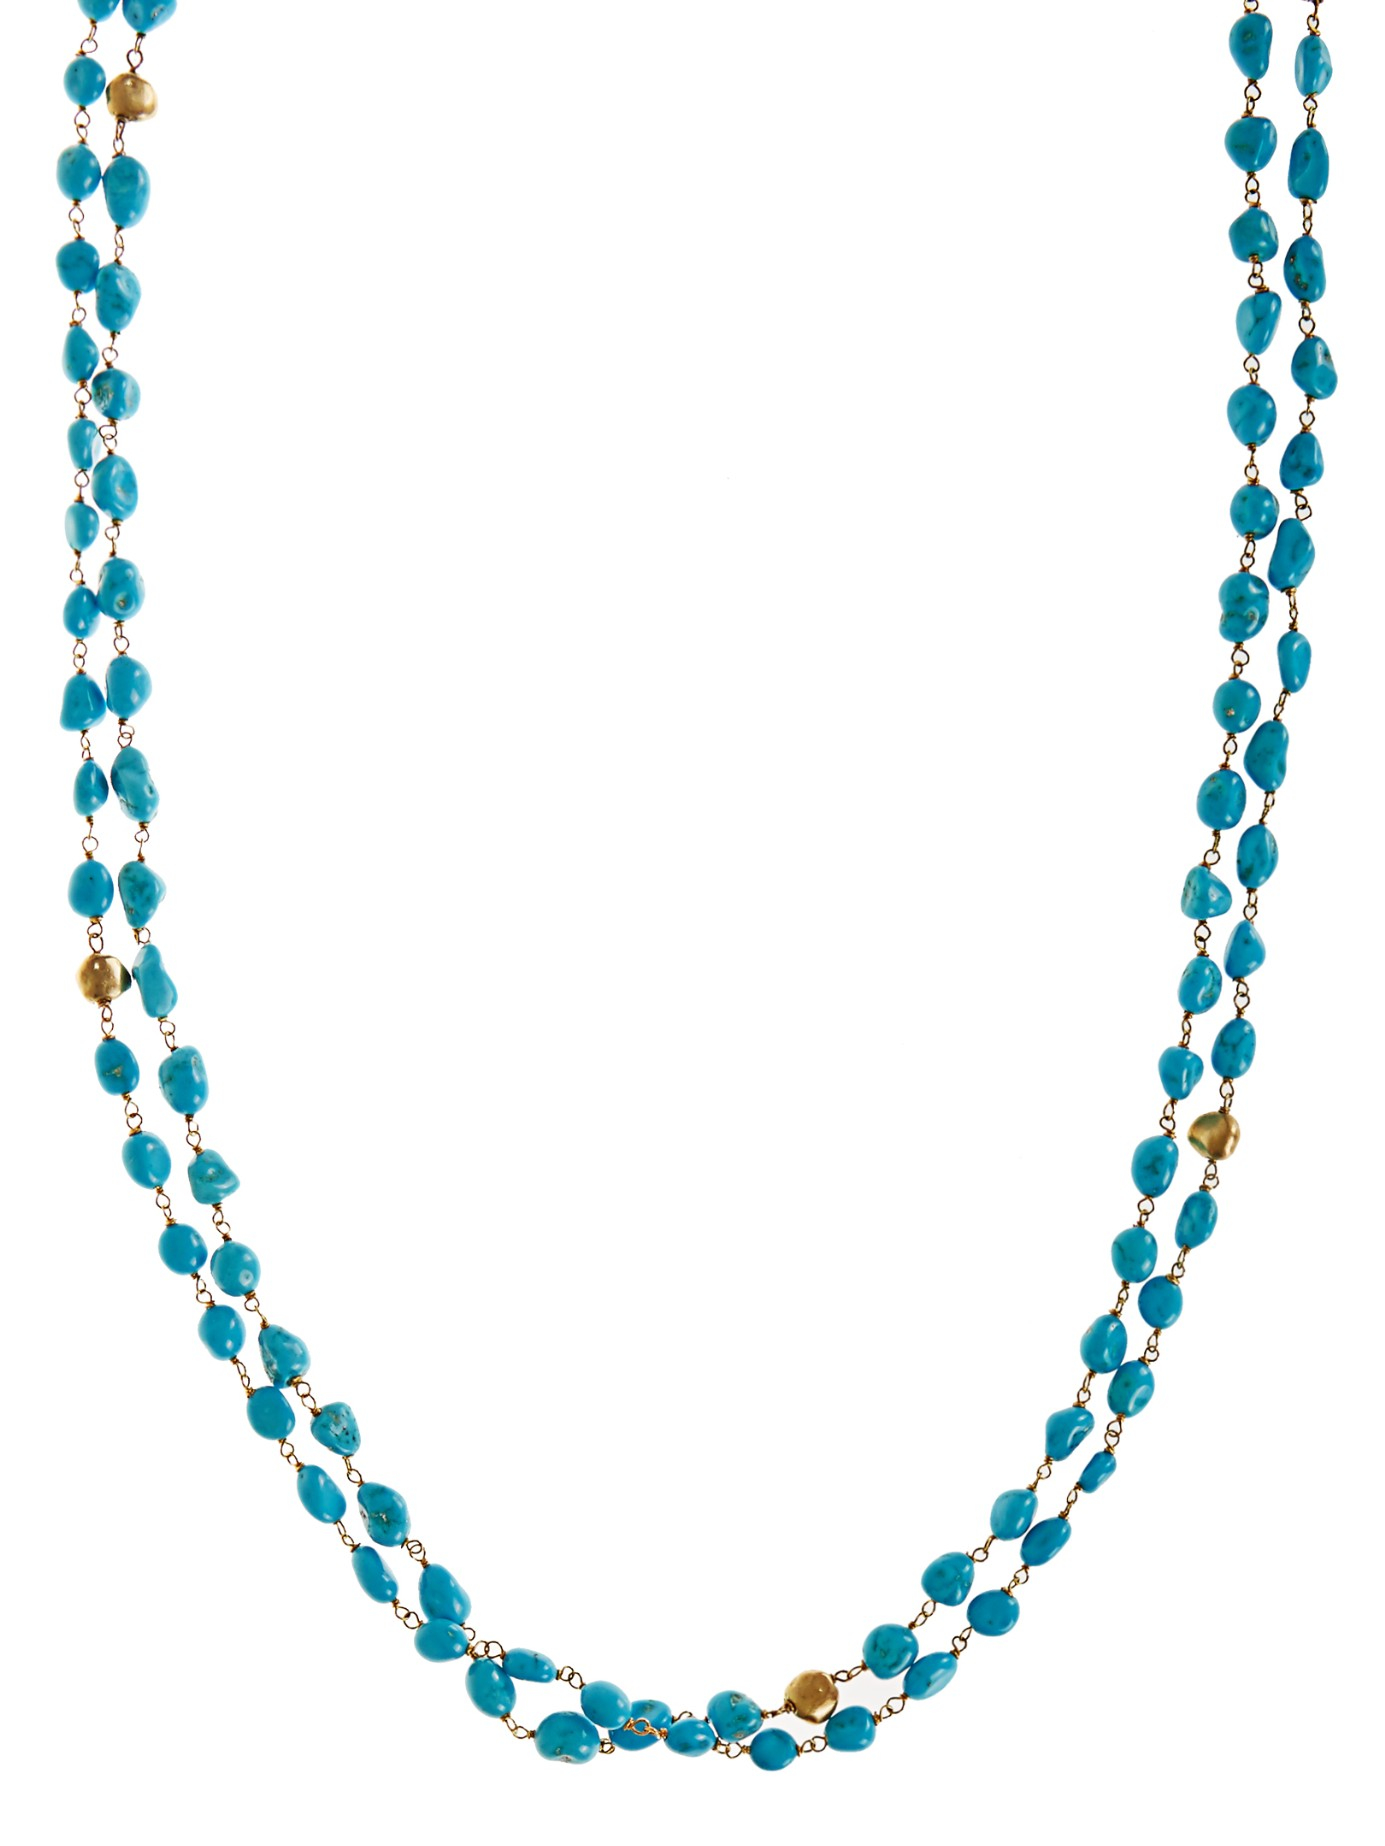 Maurizio Pintaldi Turquoise & Yellow-gold Necklace in Blue